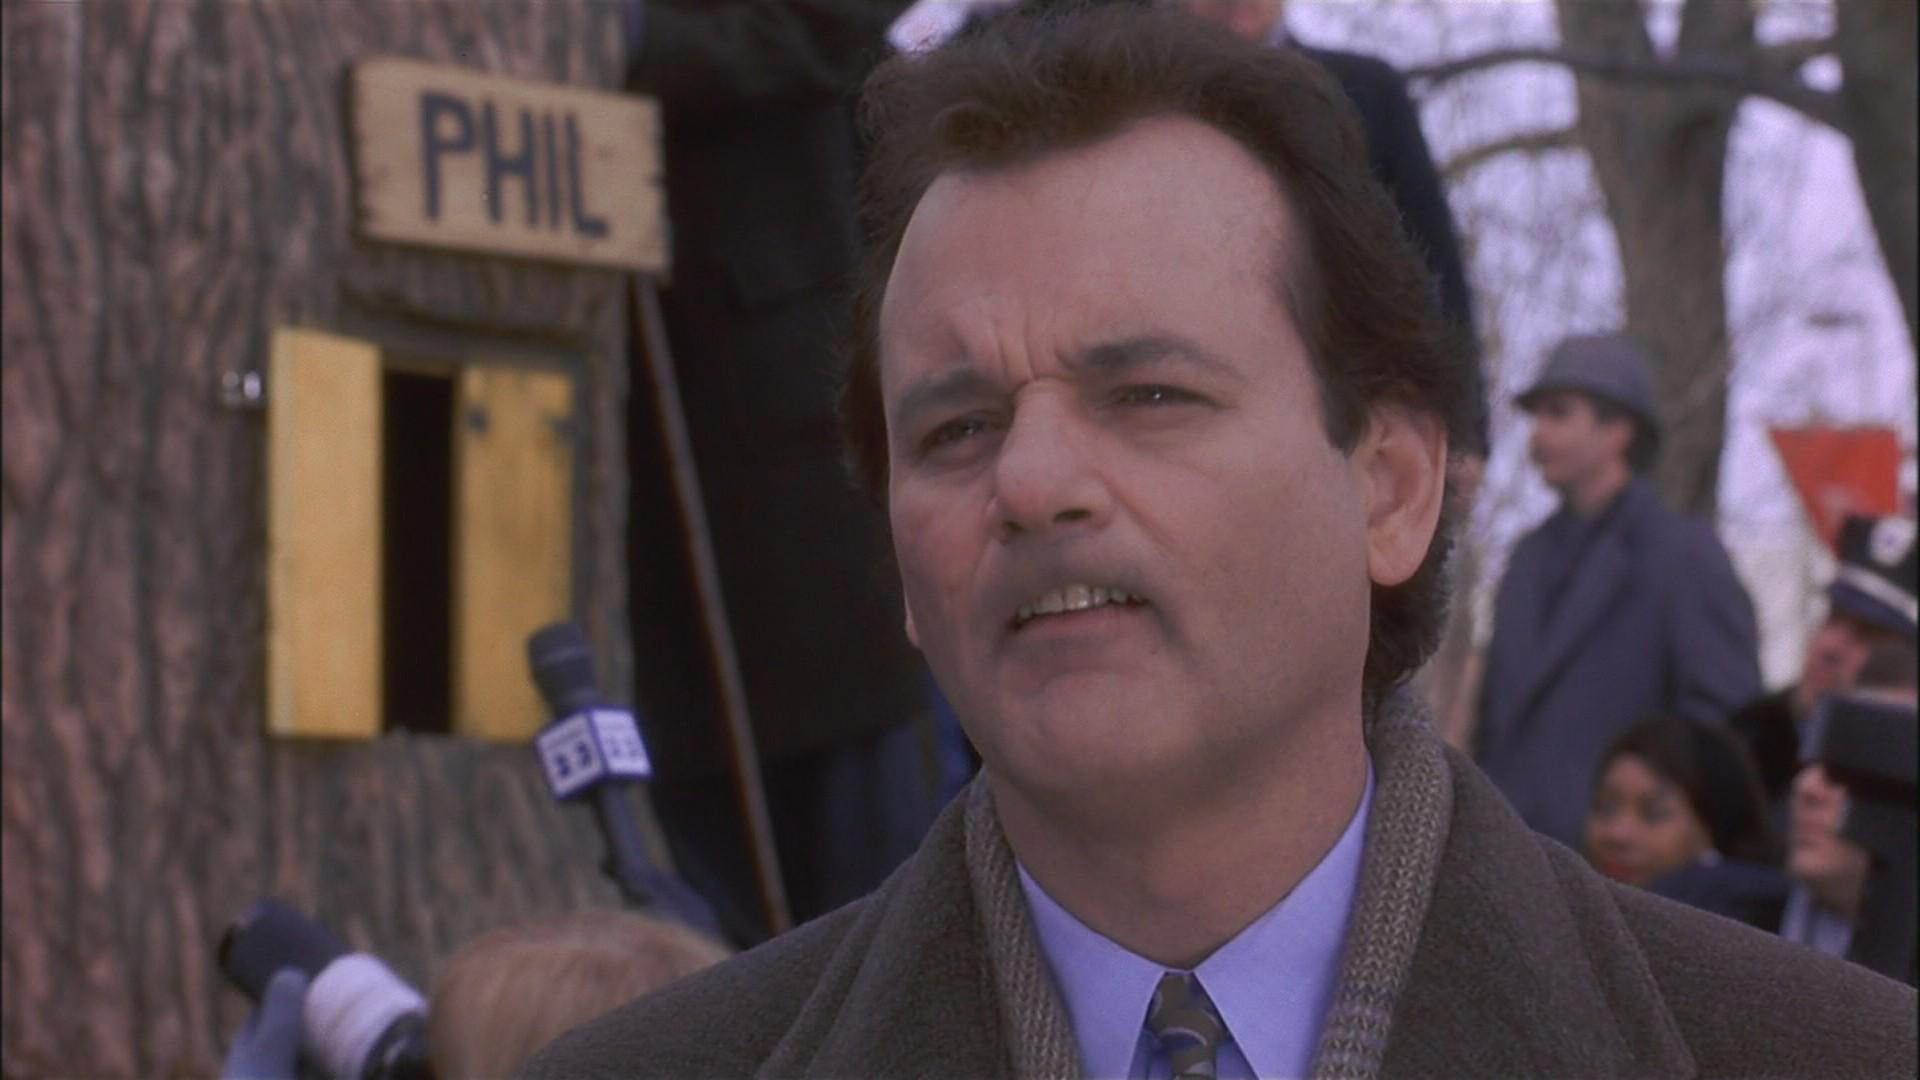 Groundhog Day Movie Quotes It's Groundhog Day  But What Is It Really About  Phactual